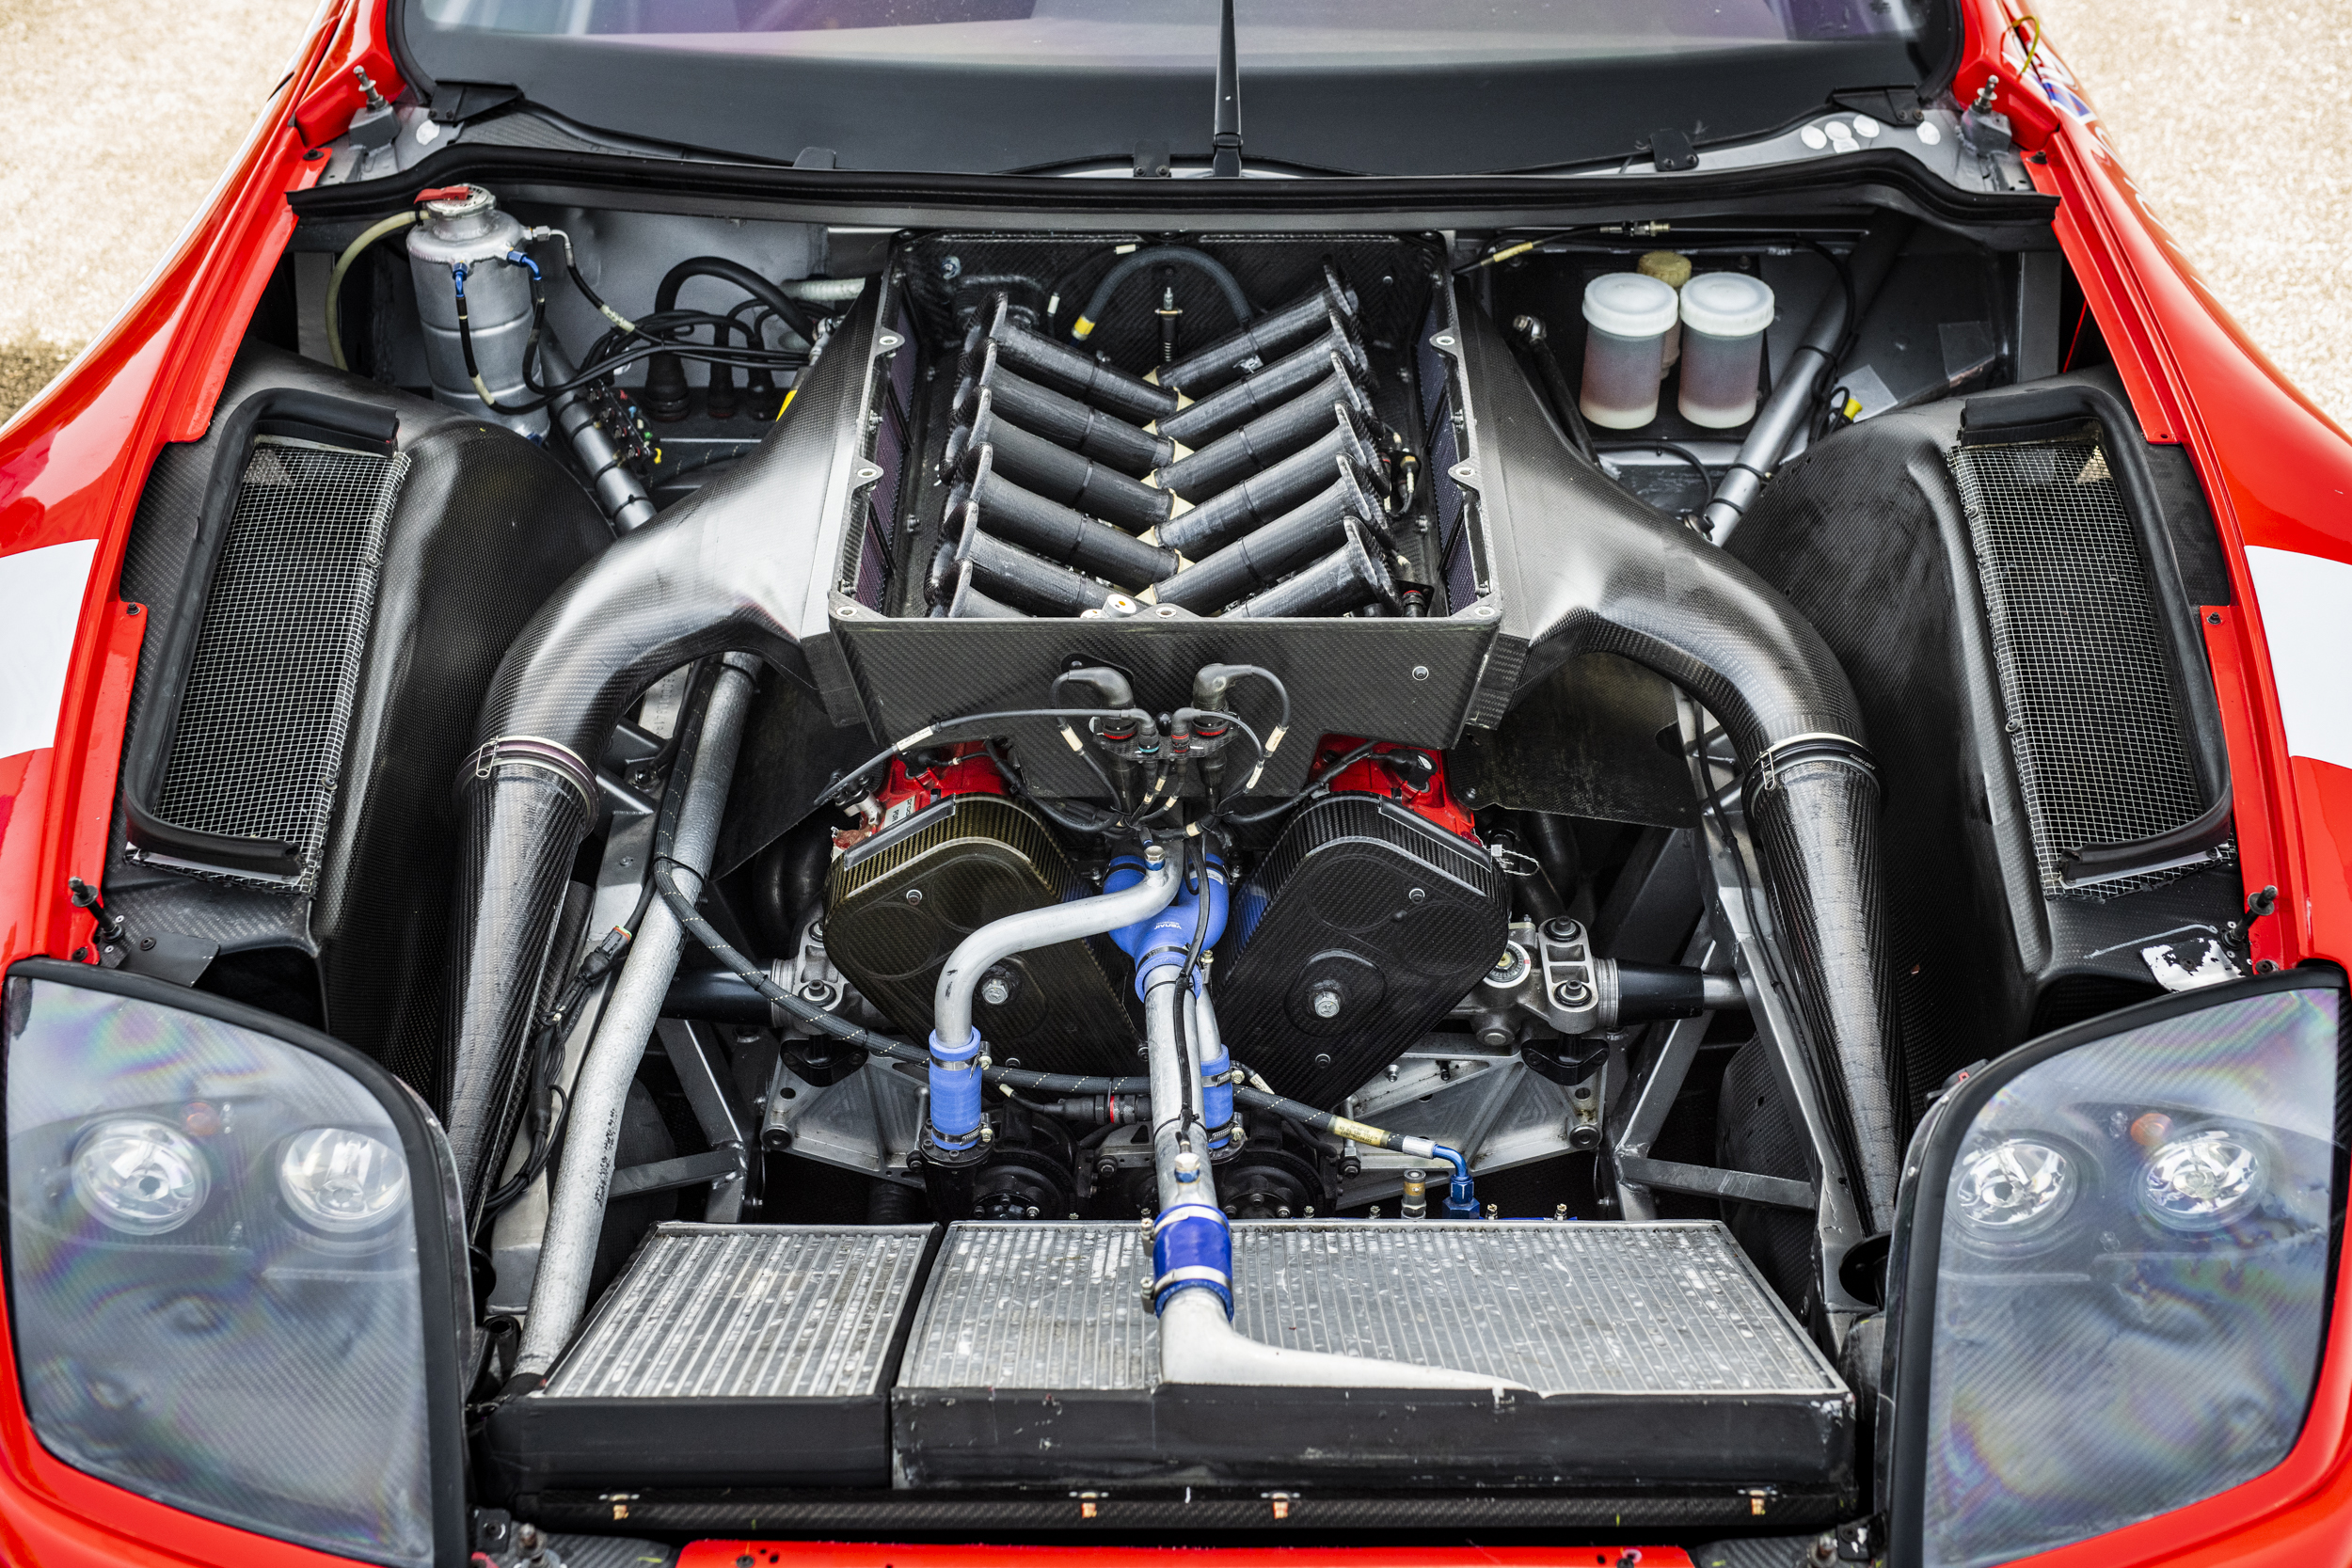 Ferrari 550 GT1 Prodrive engine bay